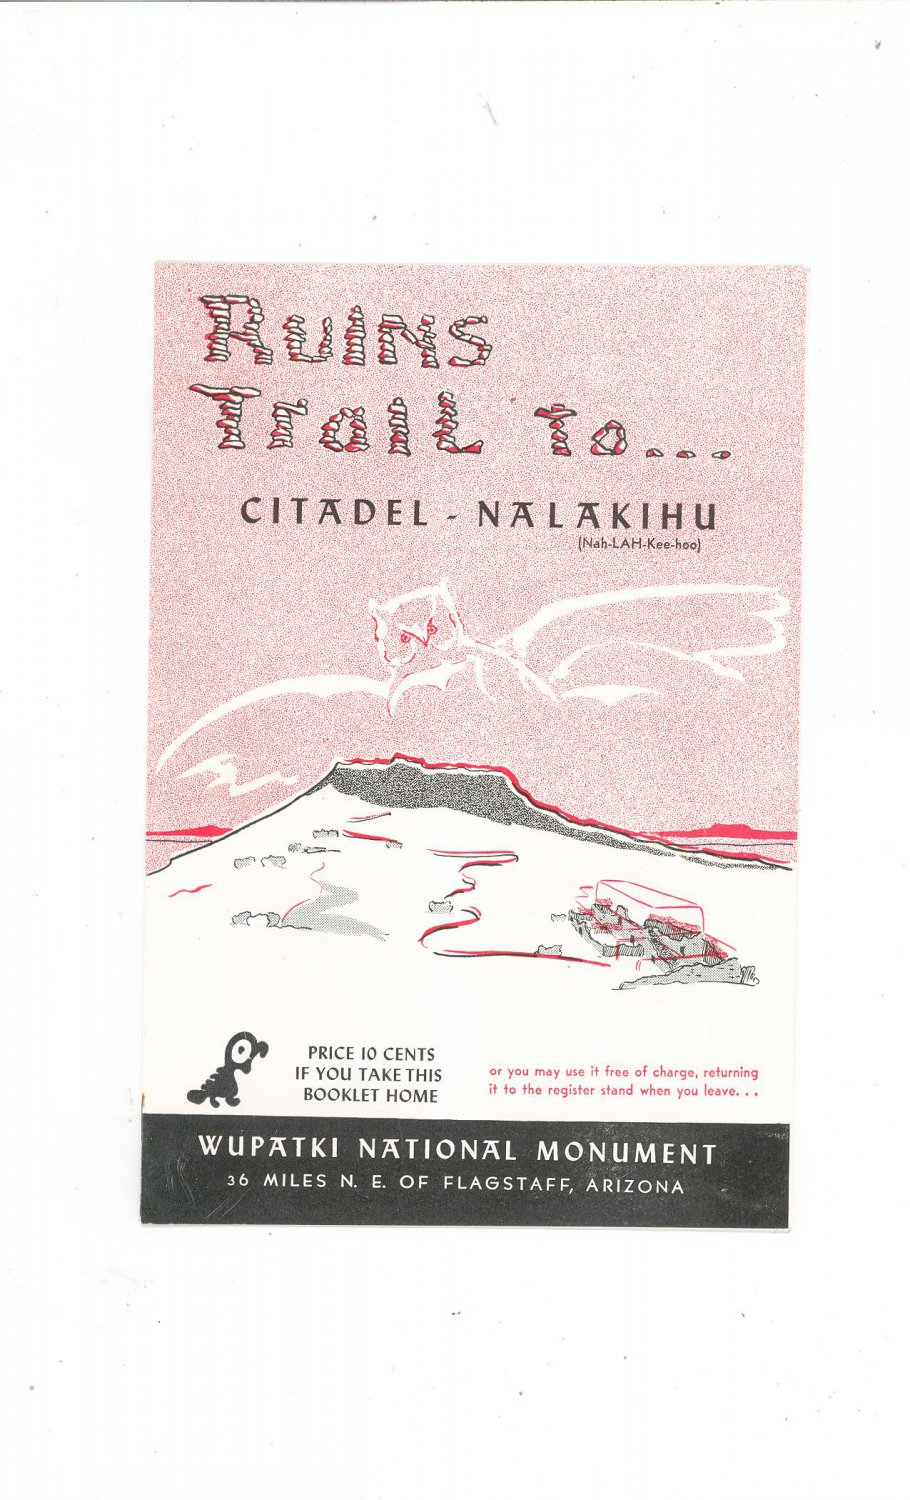 Vintage Ruins Trail To Citadel Nalakihu Travel Guide Arizona  1955